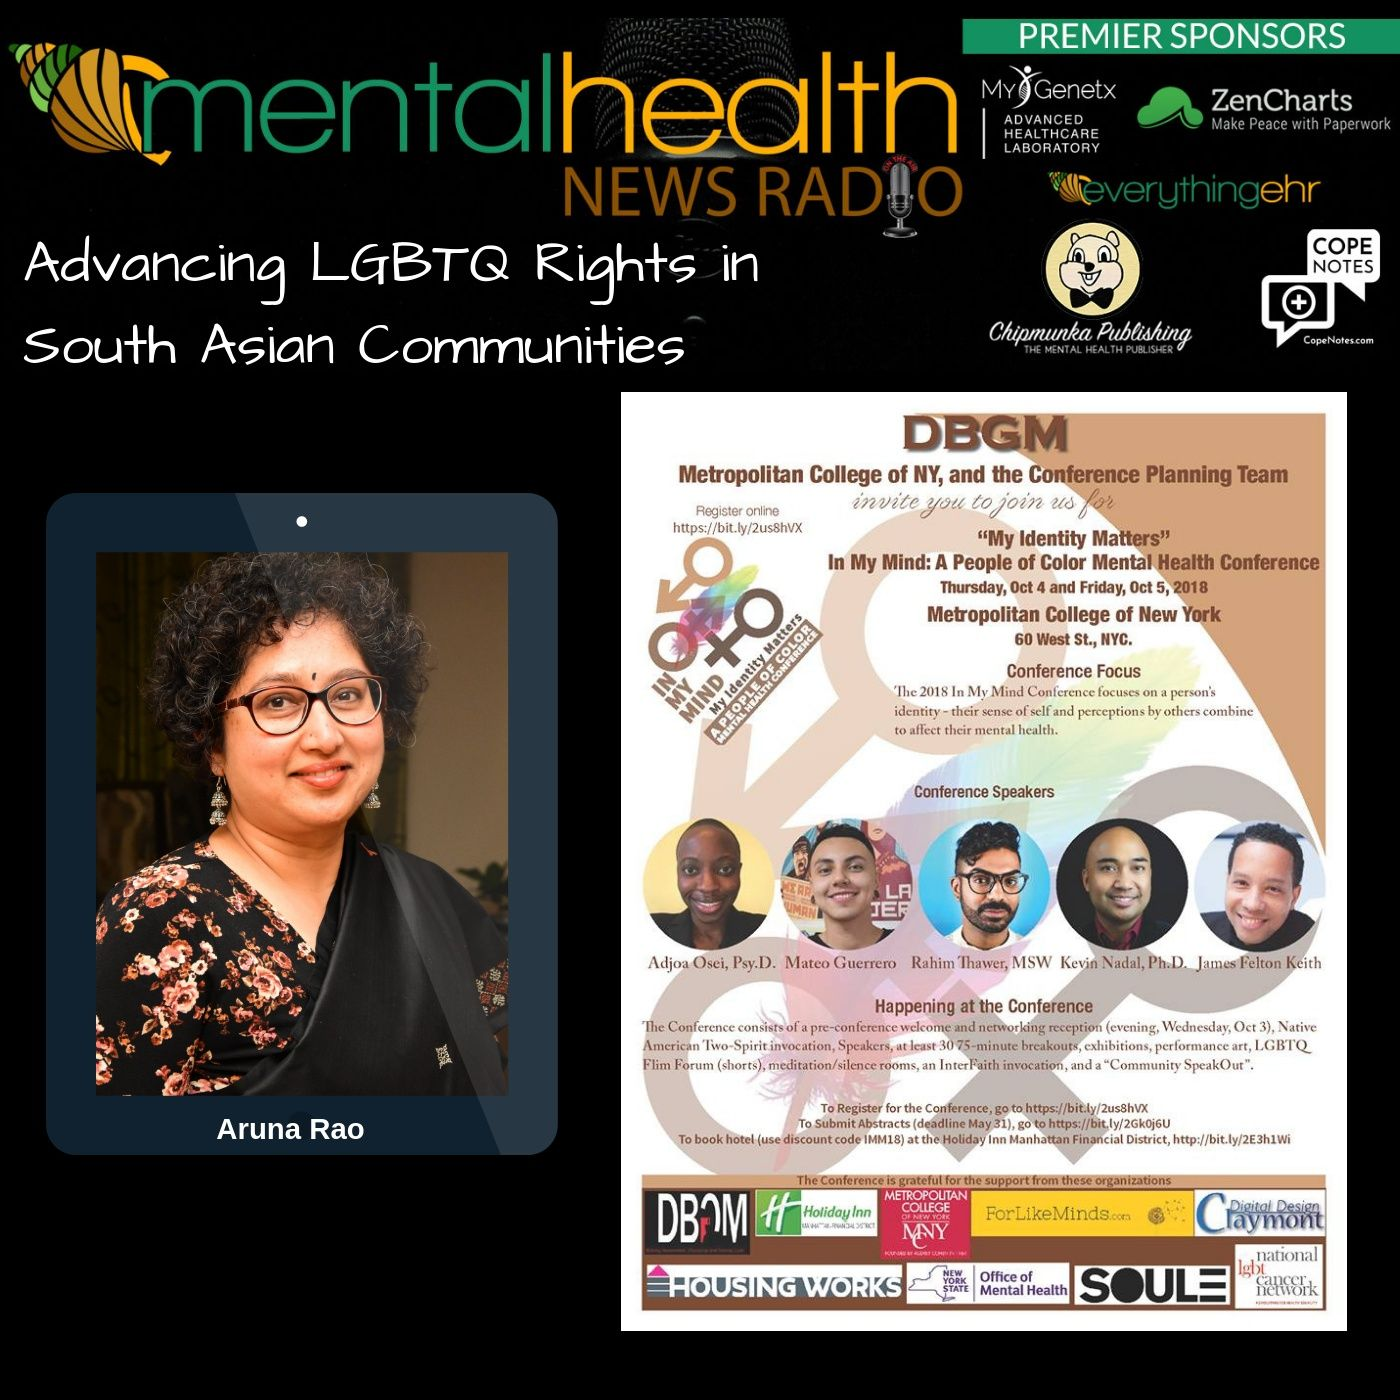 Mental Health News Radio - Advancing LGBTQ Rights in South Asian Communities with Aruna Rao